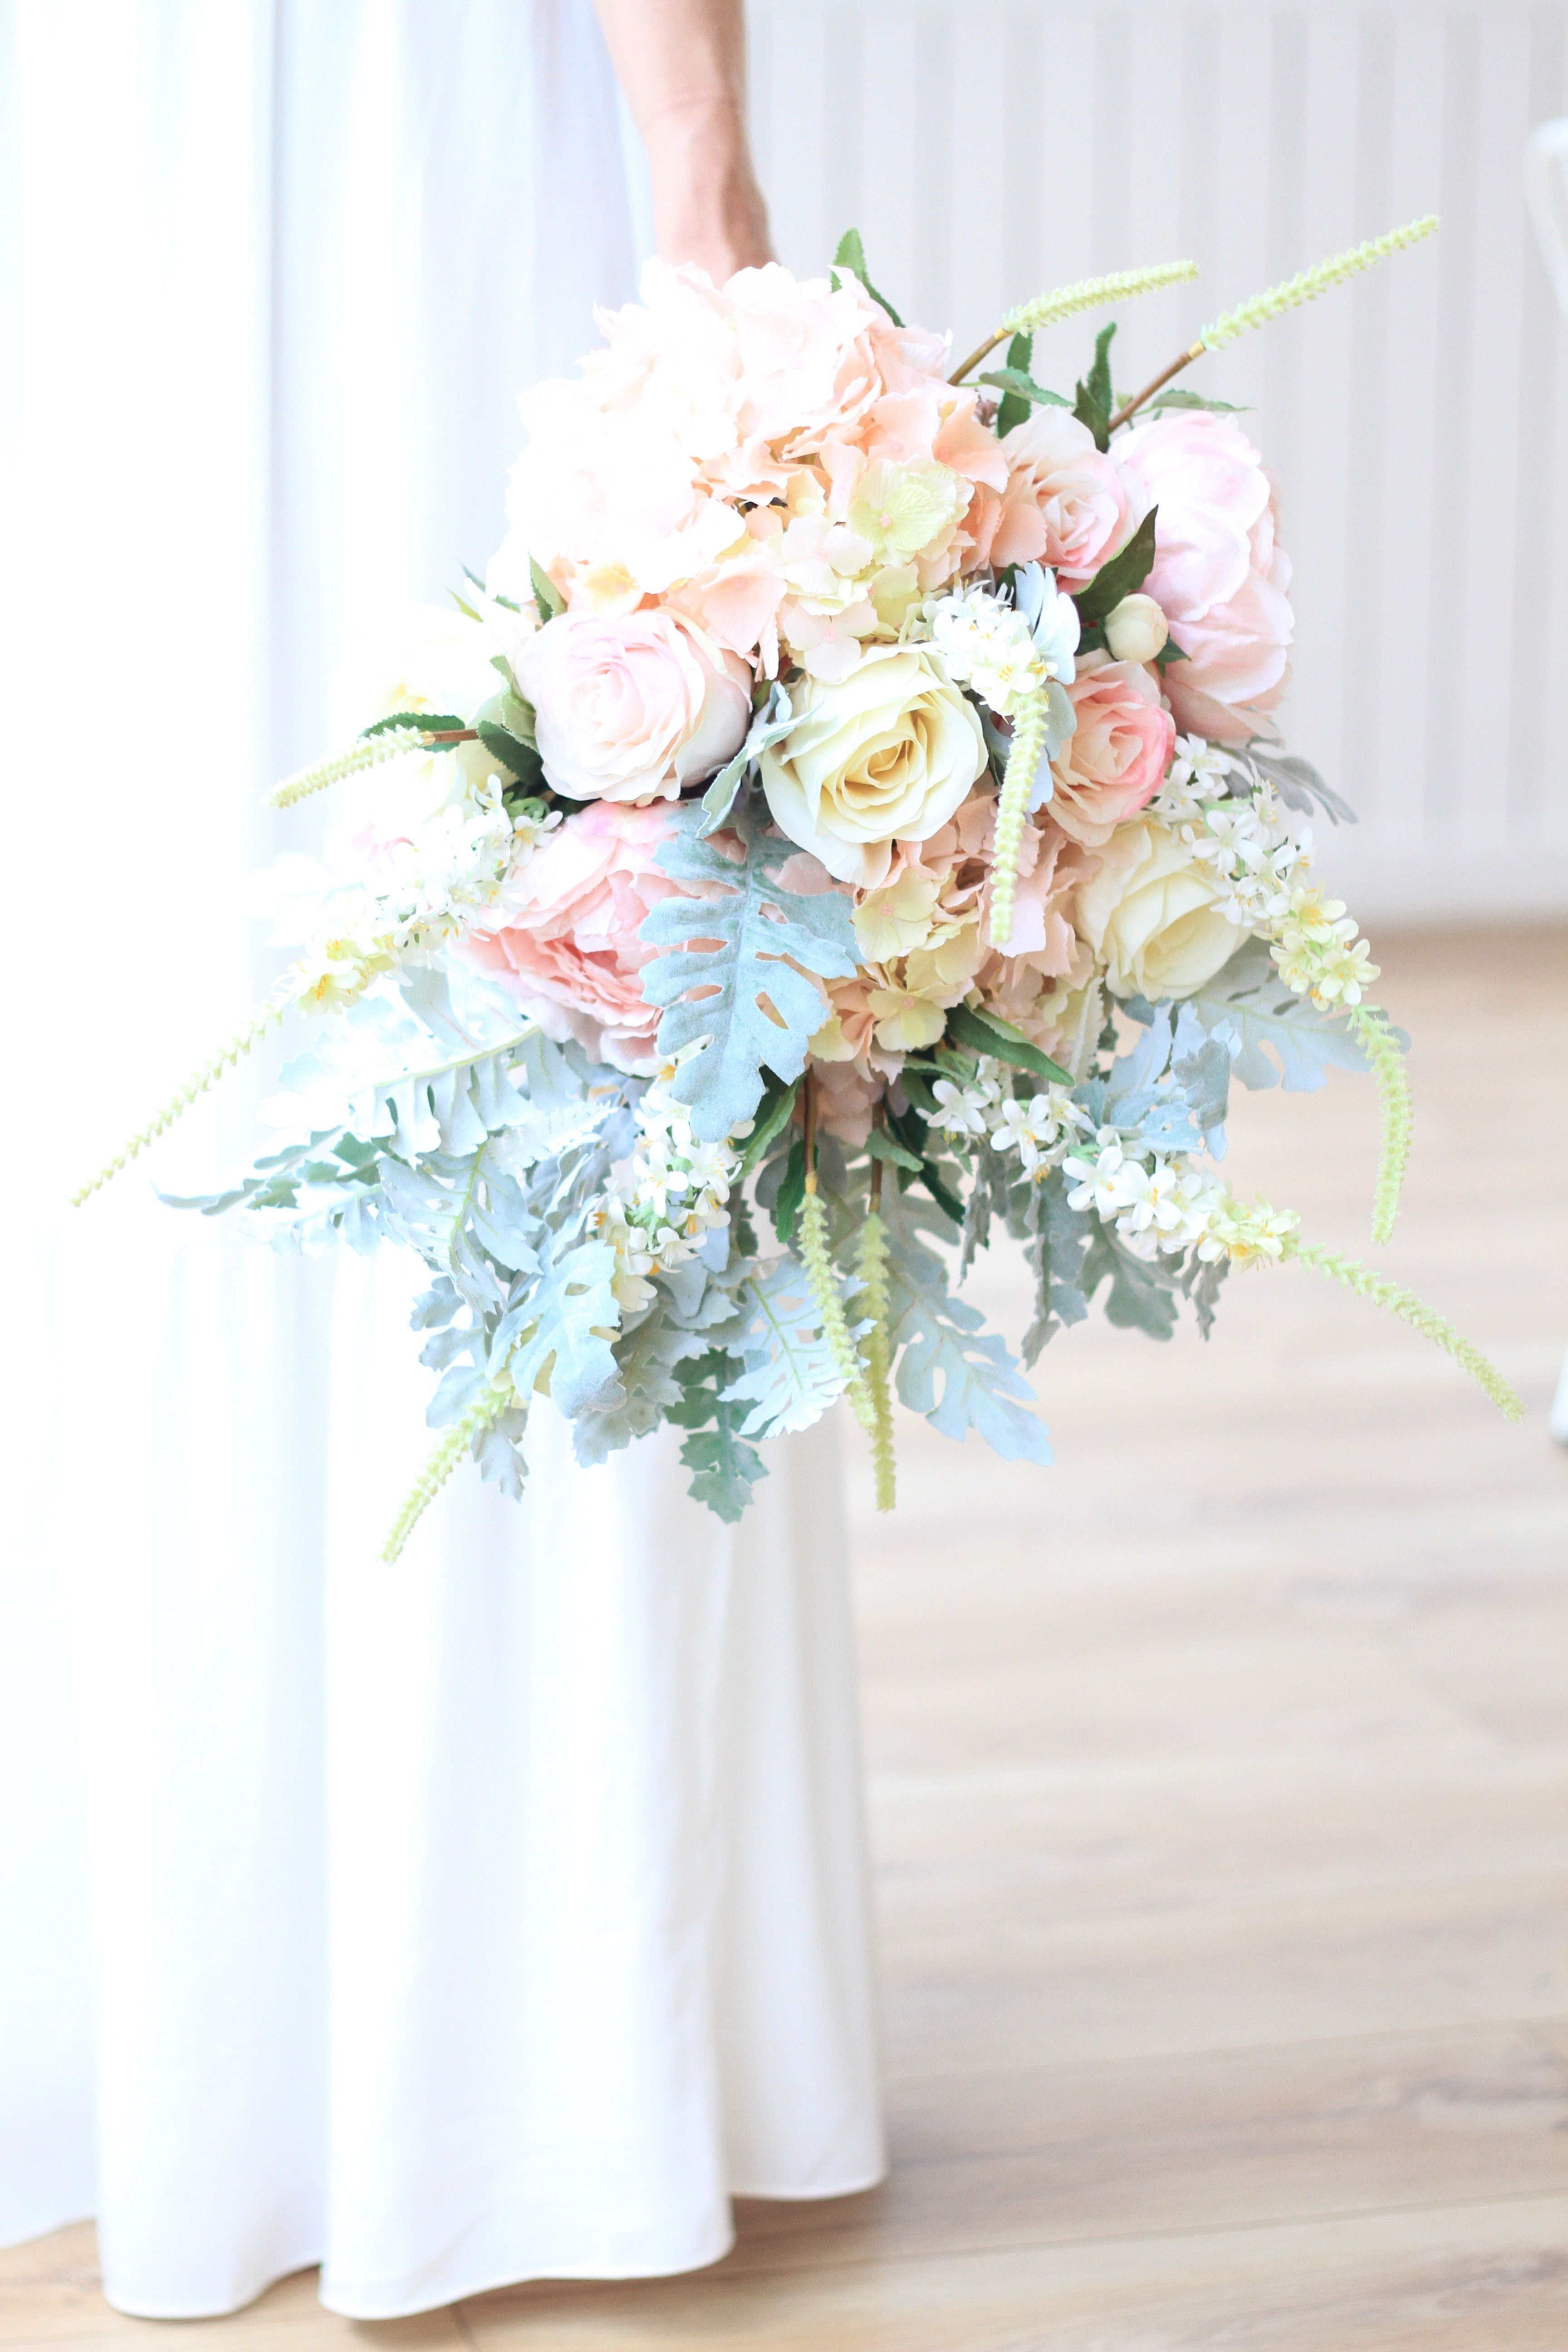 Stunning Pink And White Faux Bridal Bouquet Luxury -5171